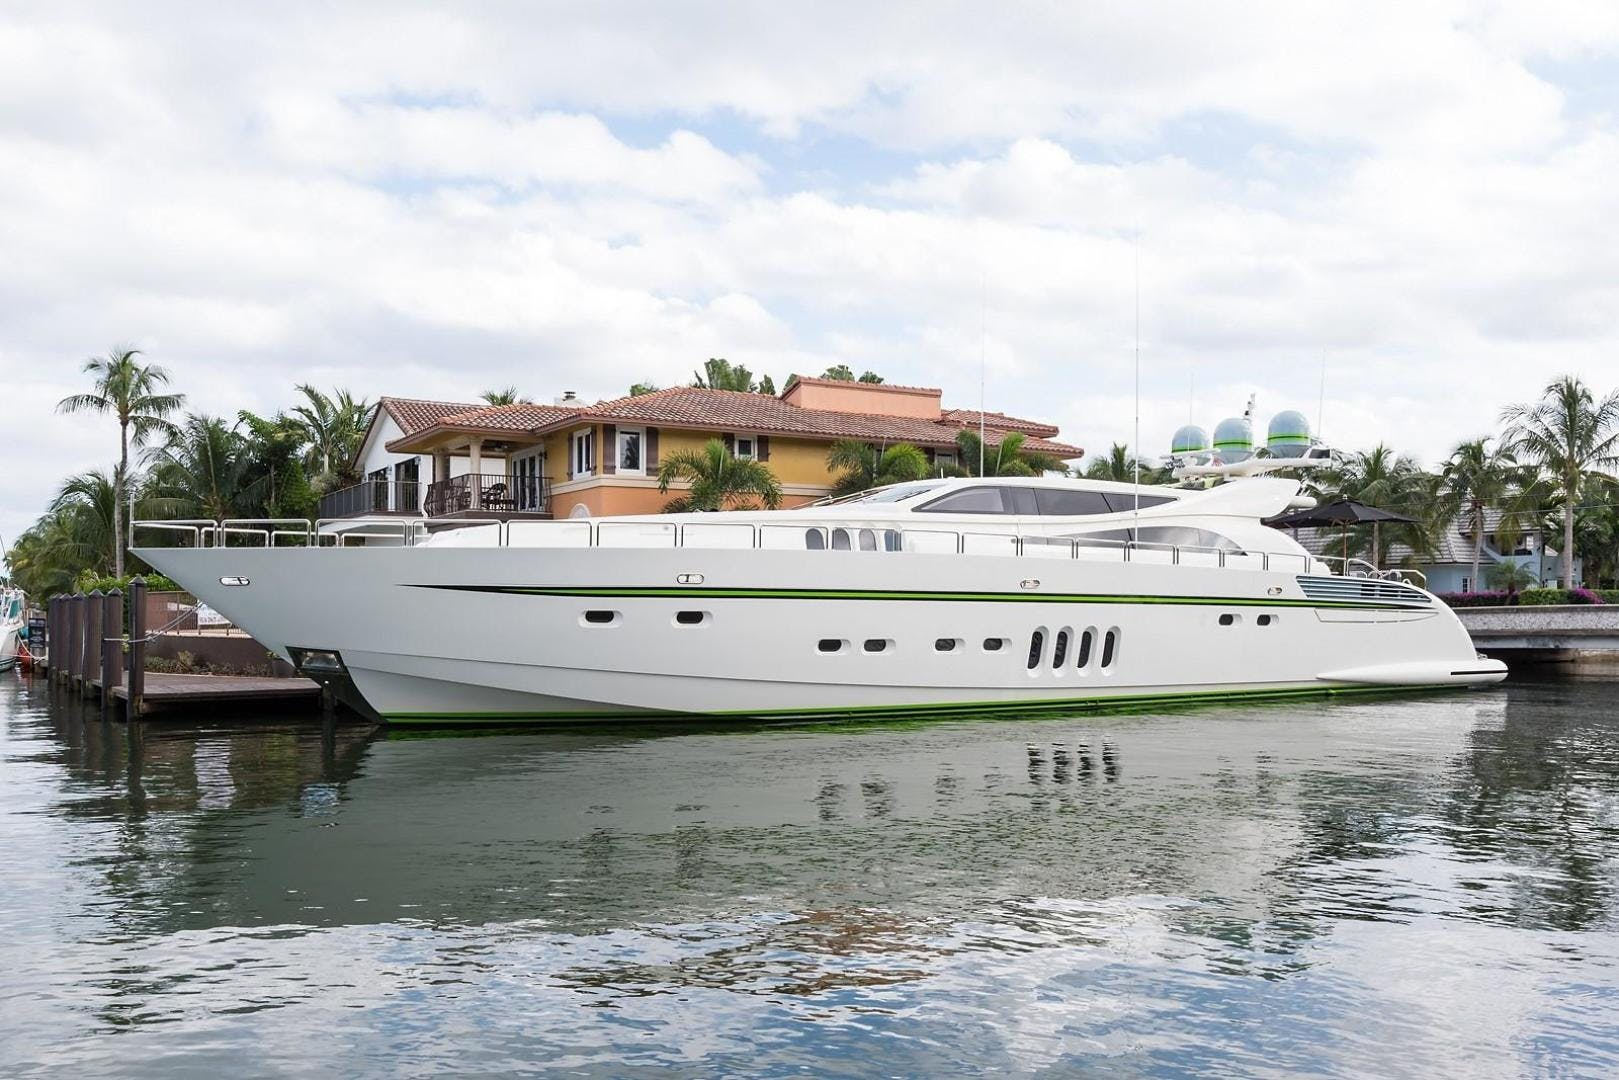 2008 Leopard 112' Motor Yacht 34M Leopard | Picture 3 of 107